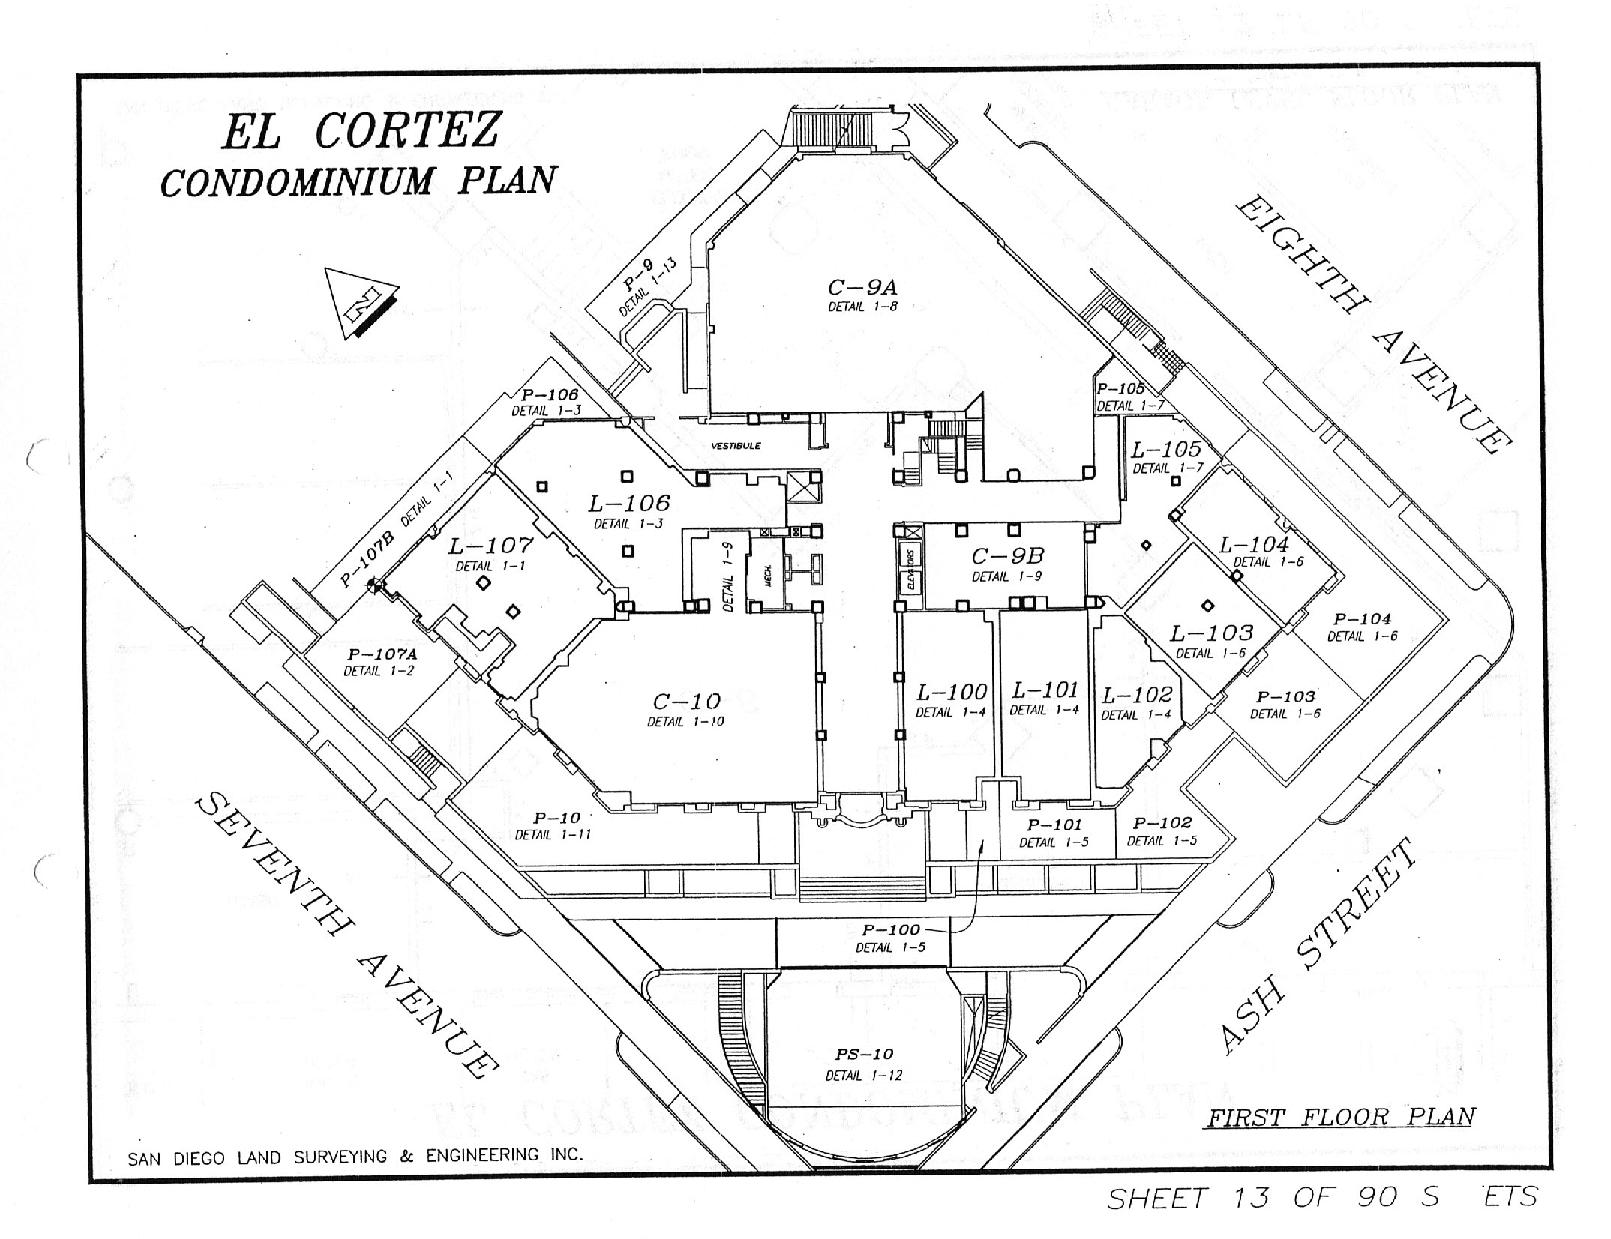 El Cortez First Floor